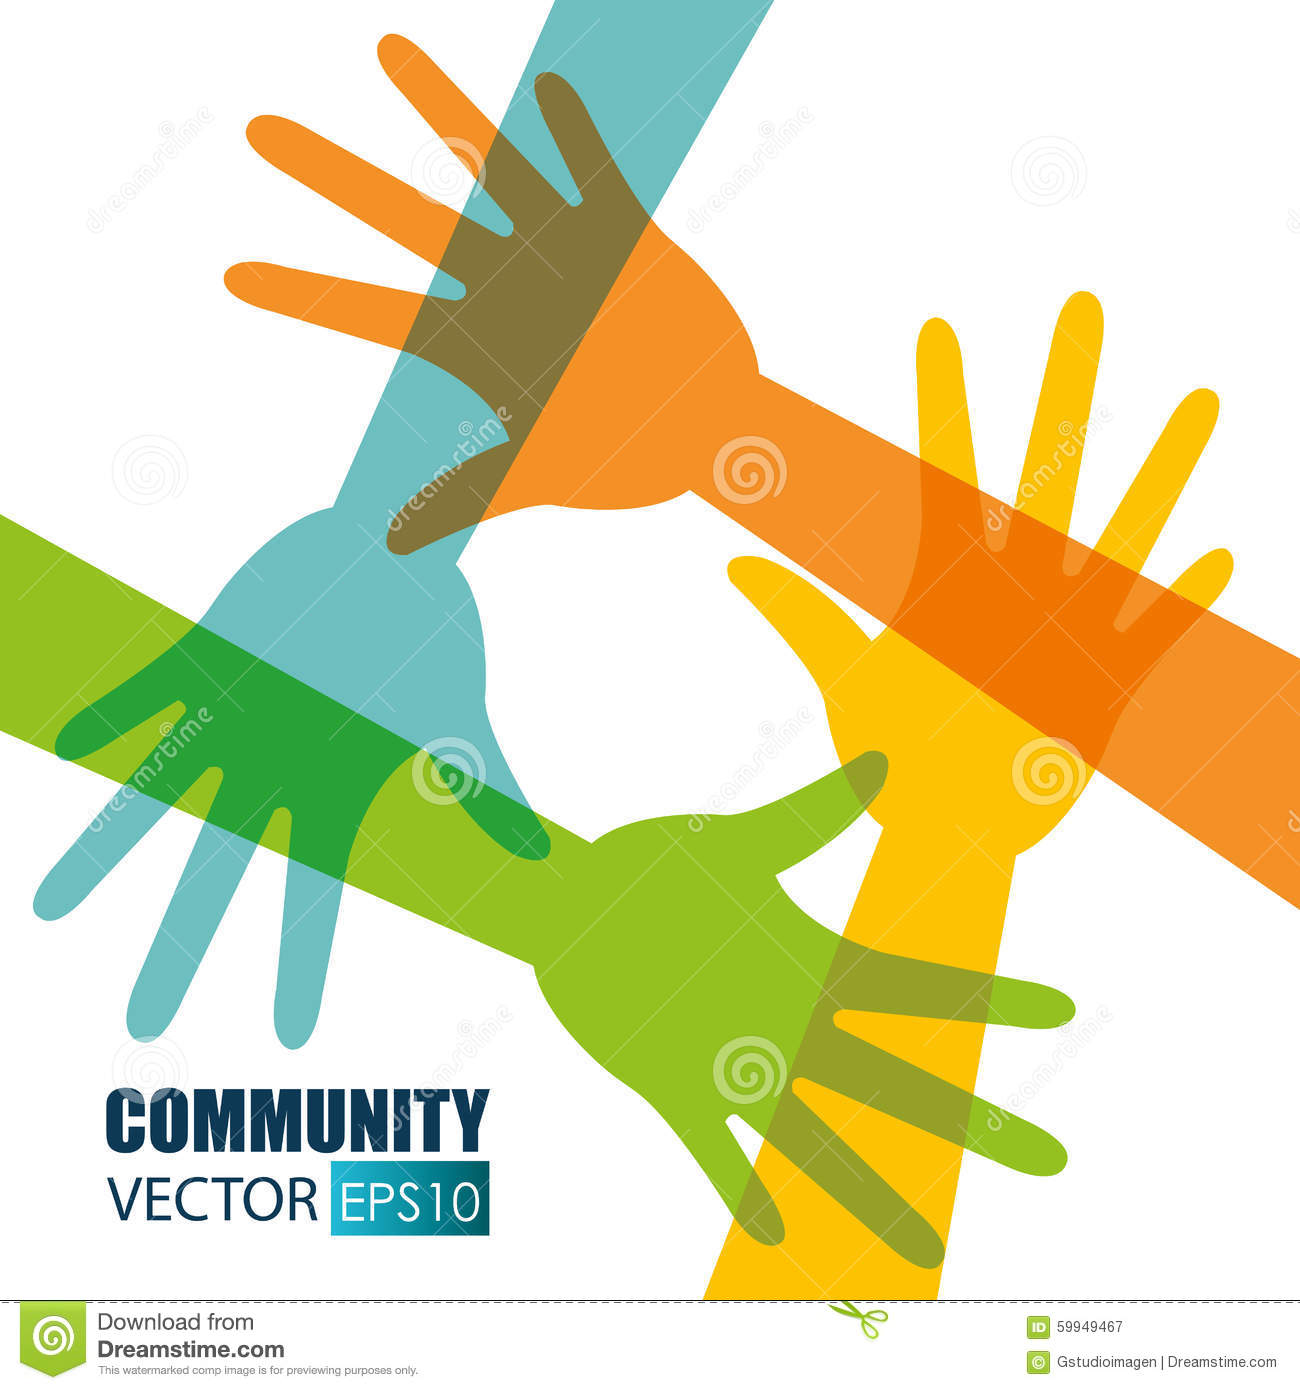 Community and social design, vector illustration eps 10.